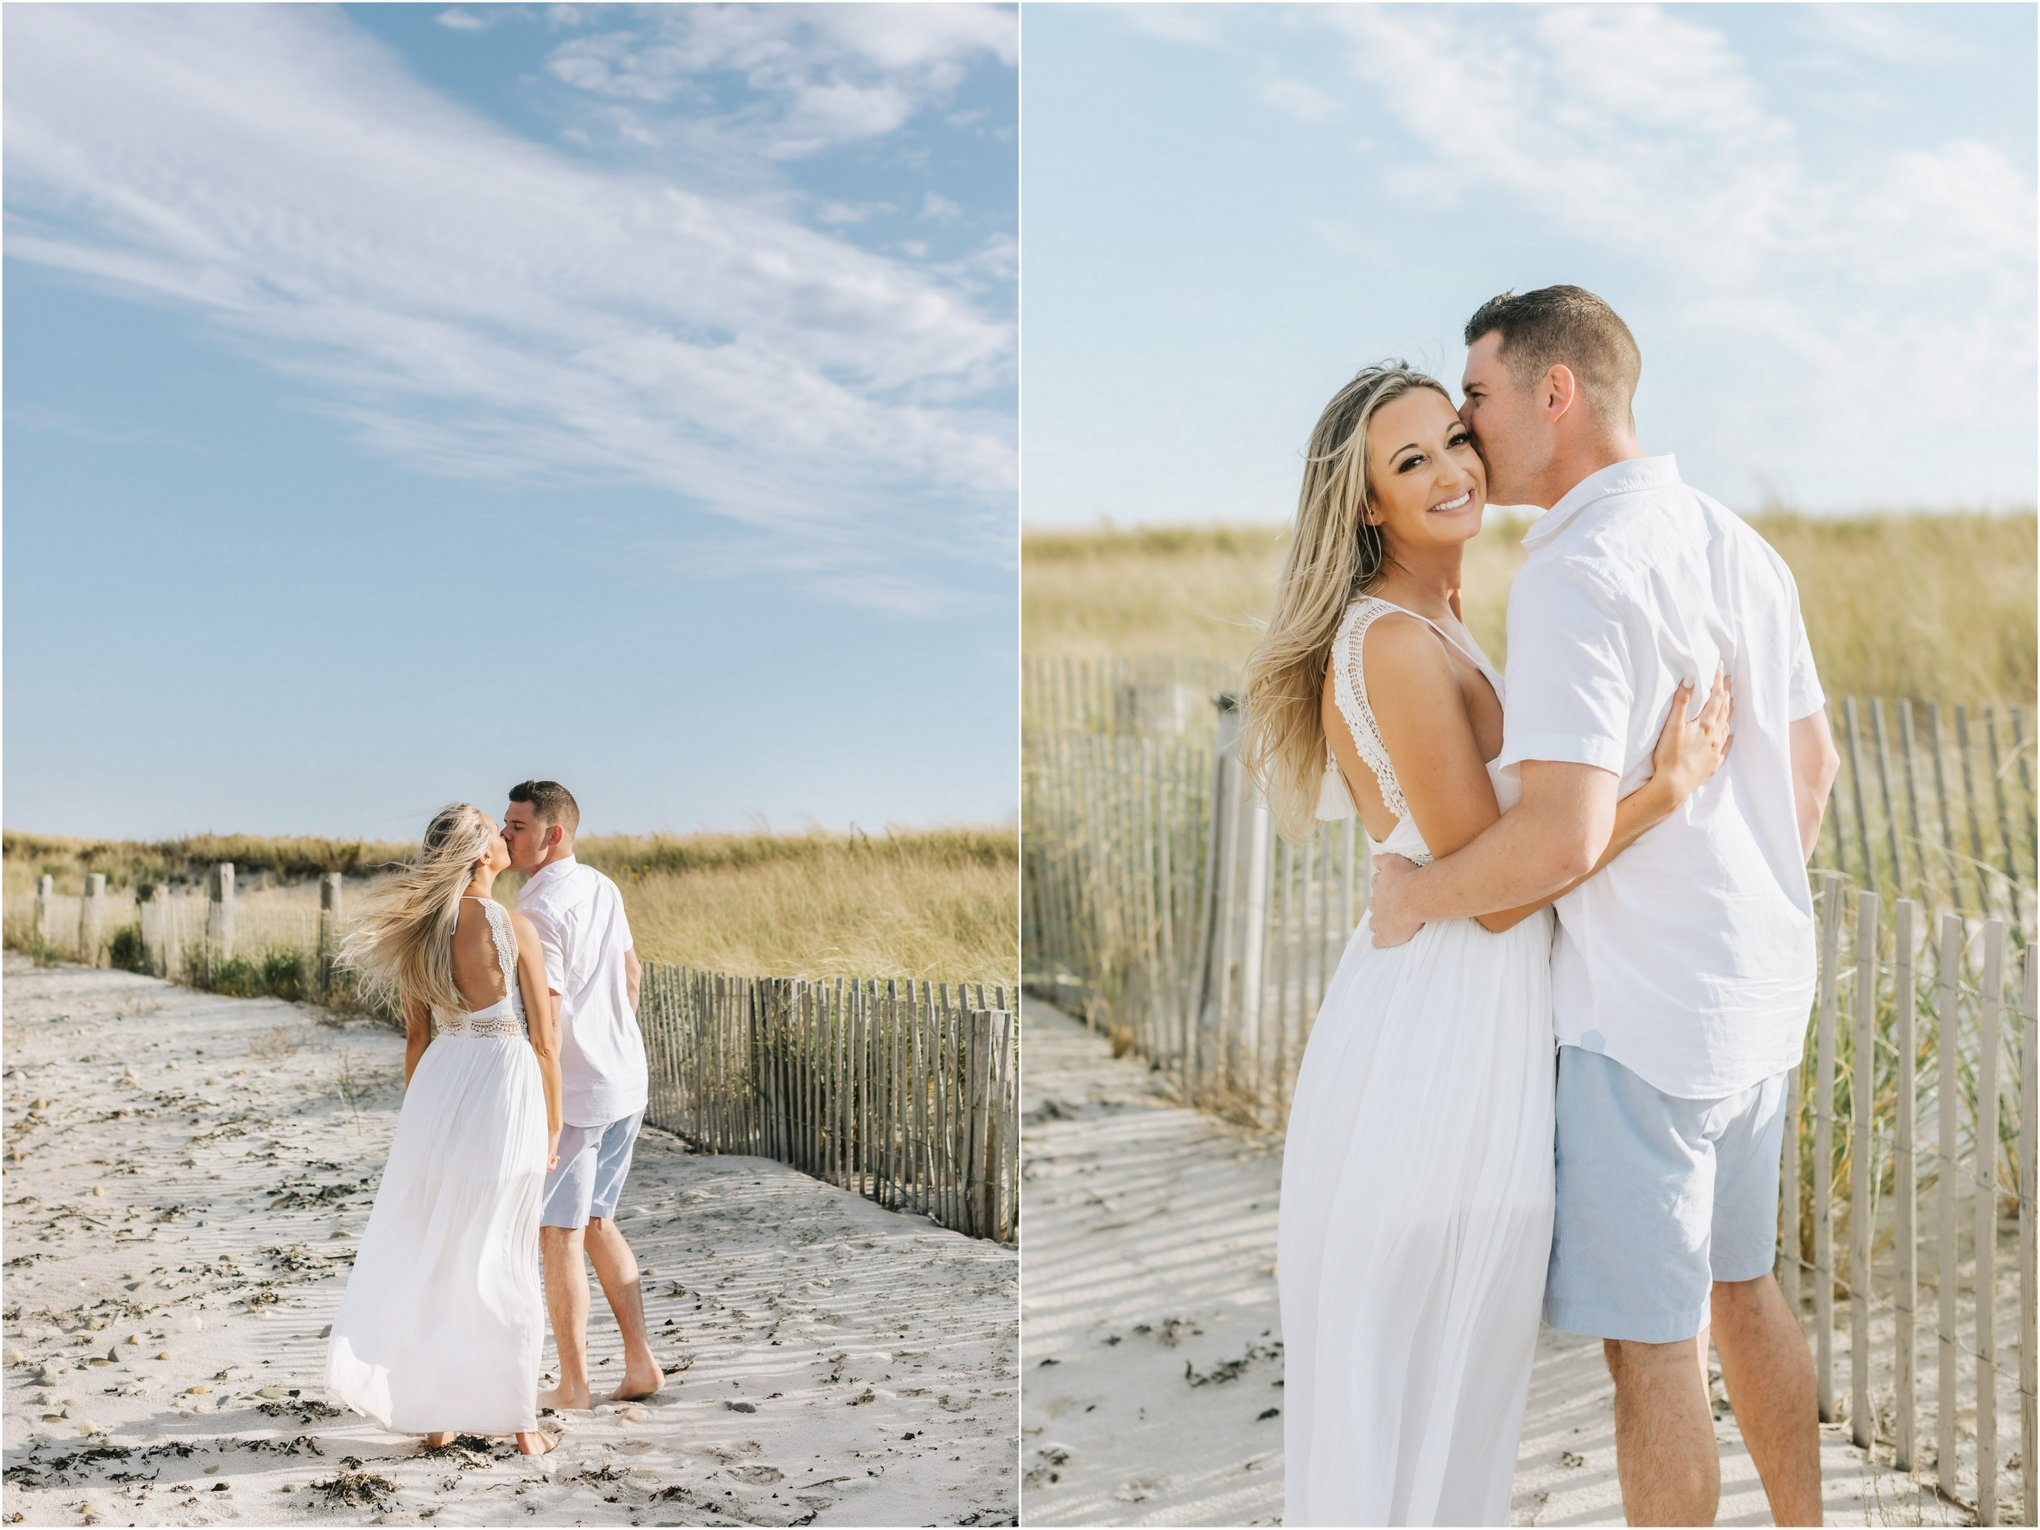 Duxbury-Beach-Engagement-2.JPG